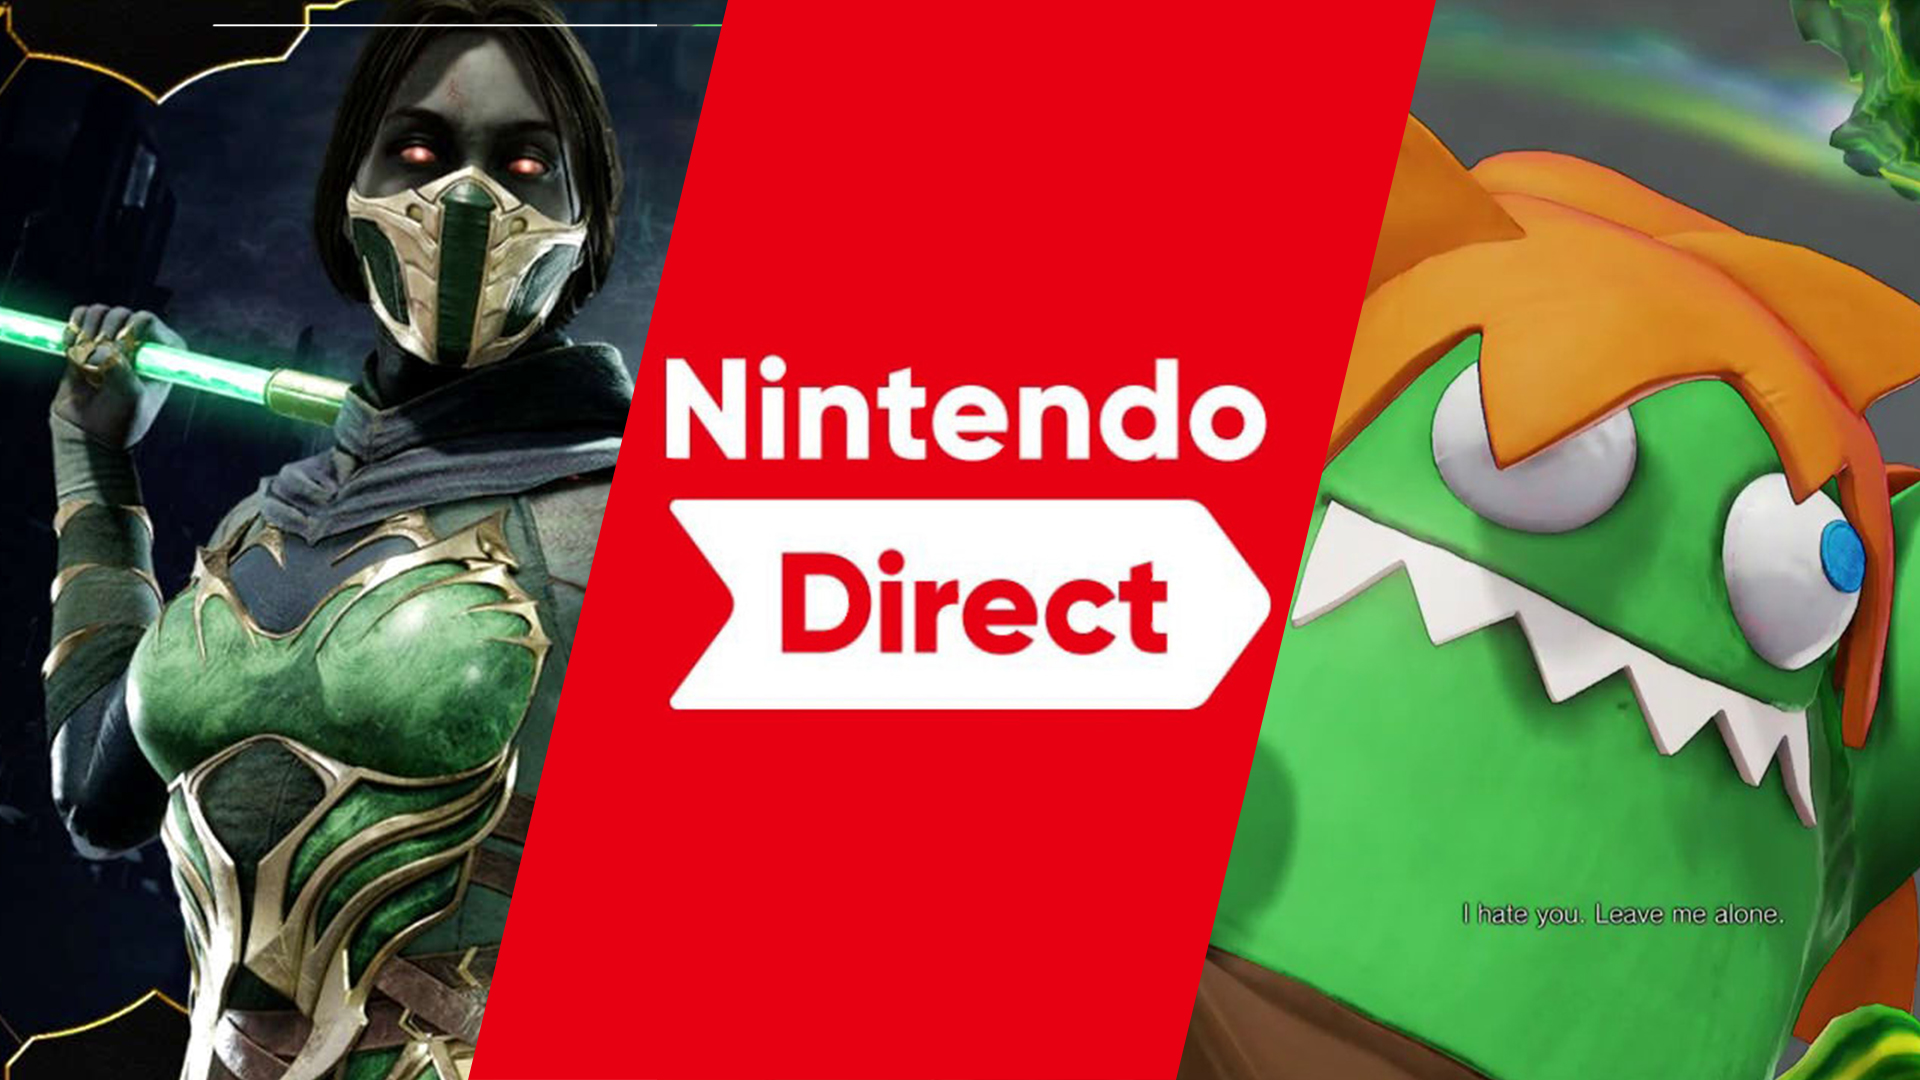 Récapitulatif semaine 7 2019 - Nintendo Direct, Mortal Kombat 11, Street Fighter V